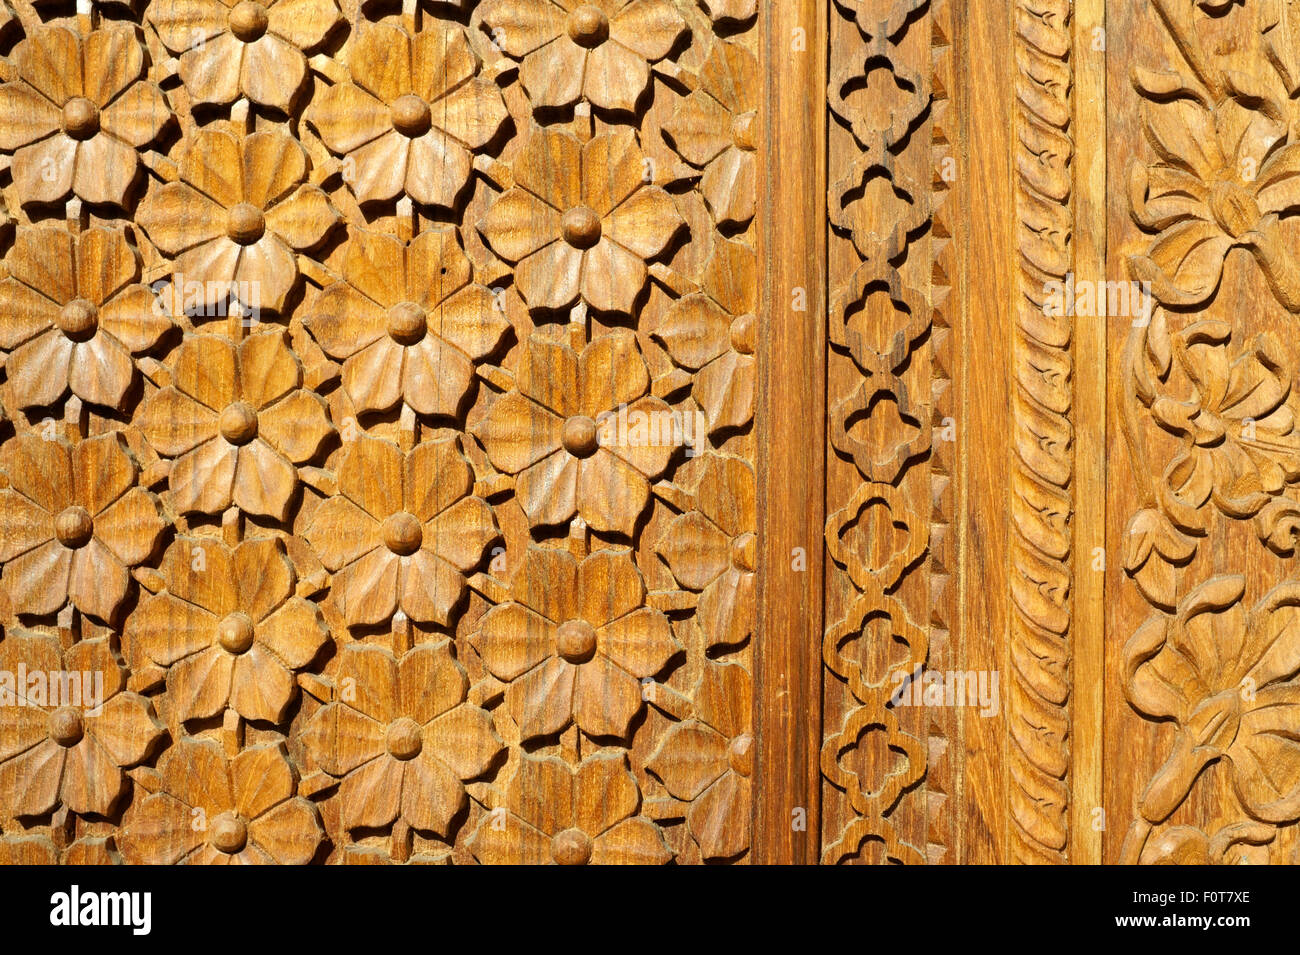 carved wooden flowers stock photos carved wooden flowers stock